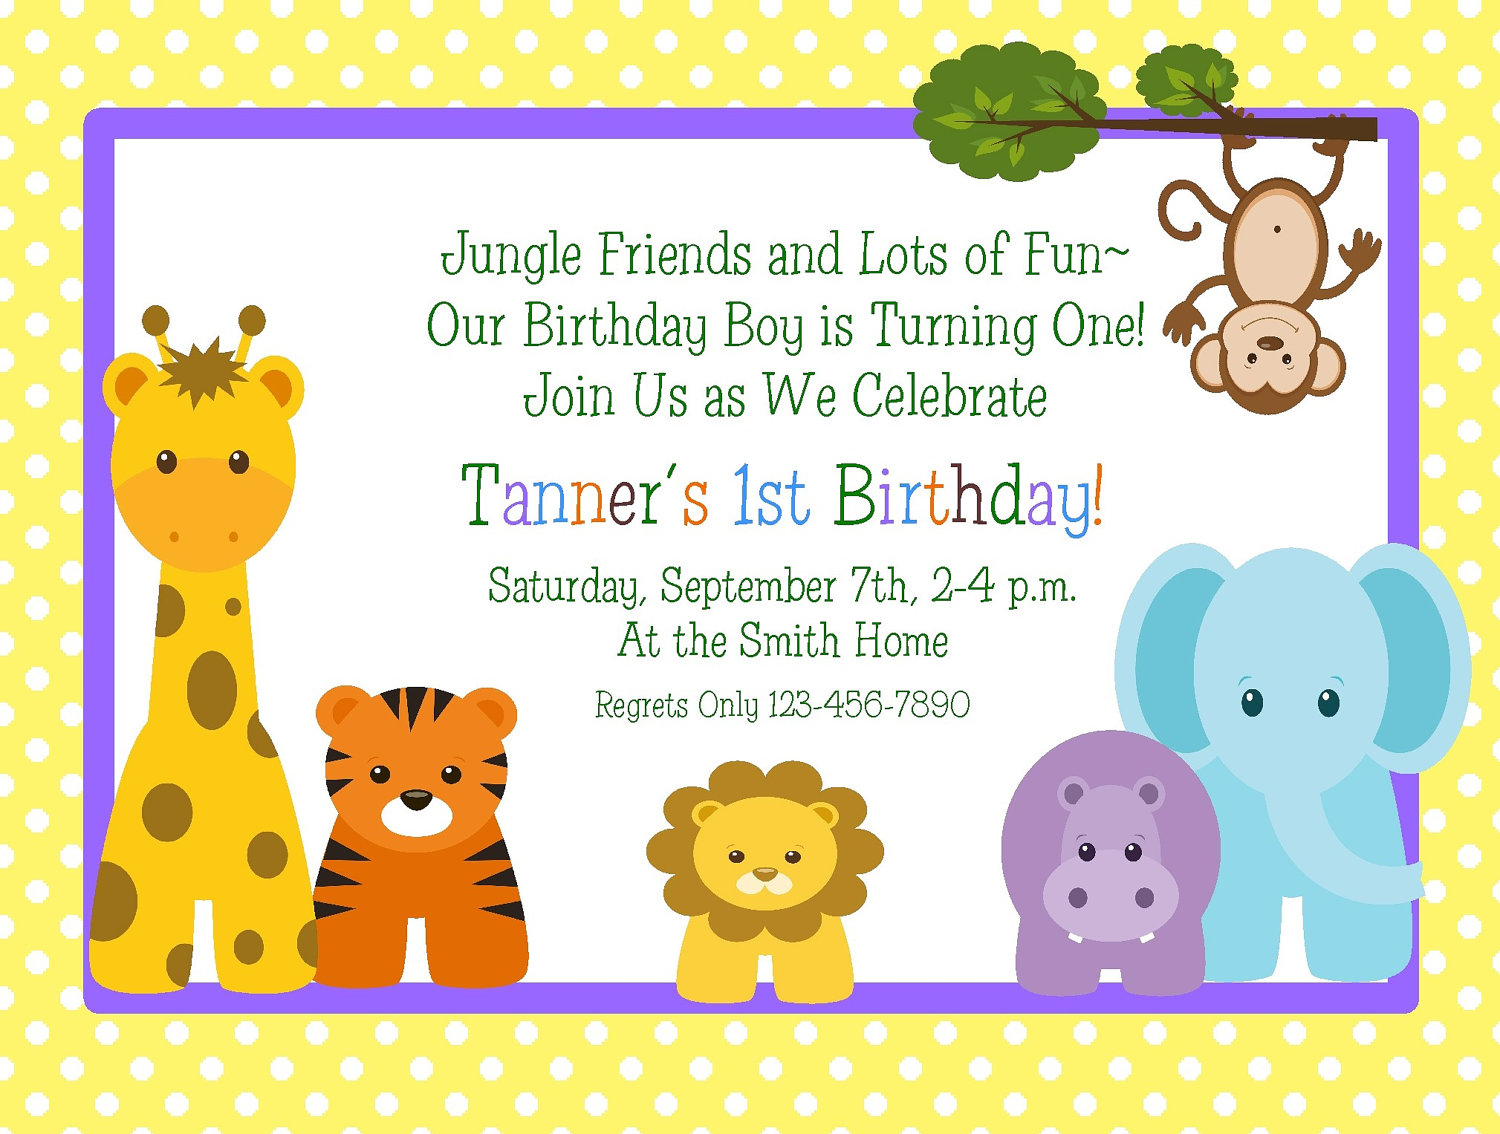 free birthday invitation printable cards ; Attractive-First-Birthday-Party-Invitations-To-Create-Your-Own-Free-Printable-Birthday-Party-Invitations